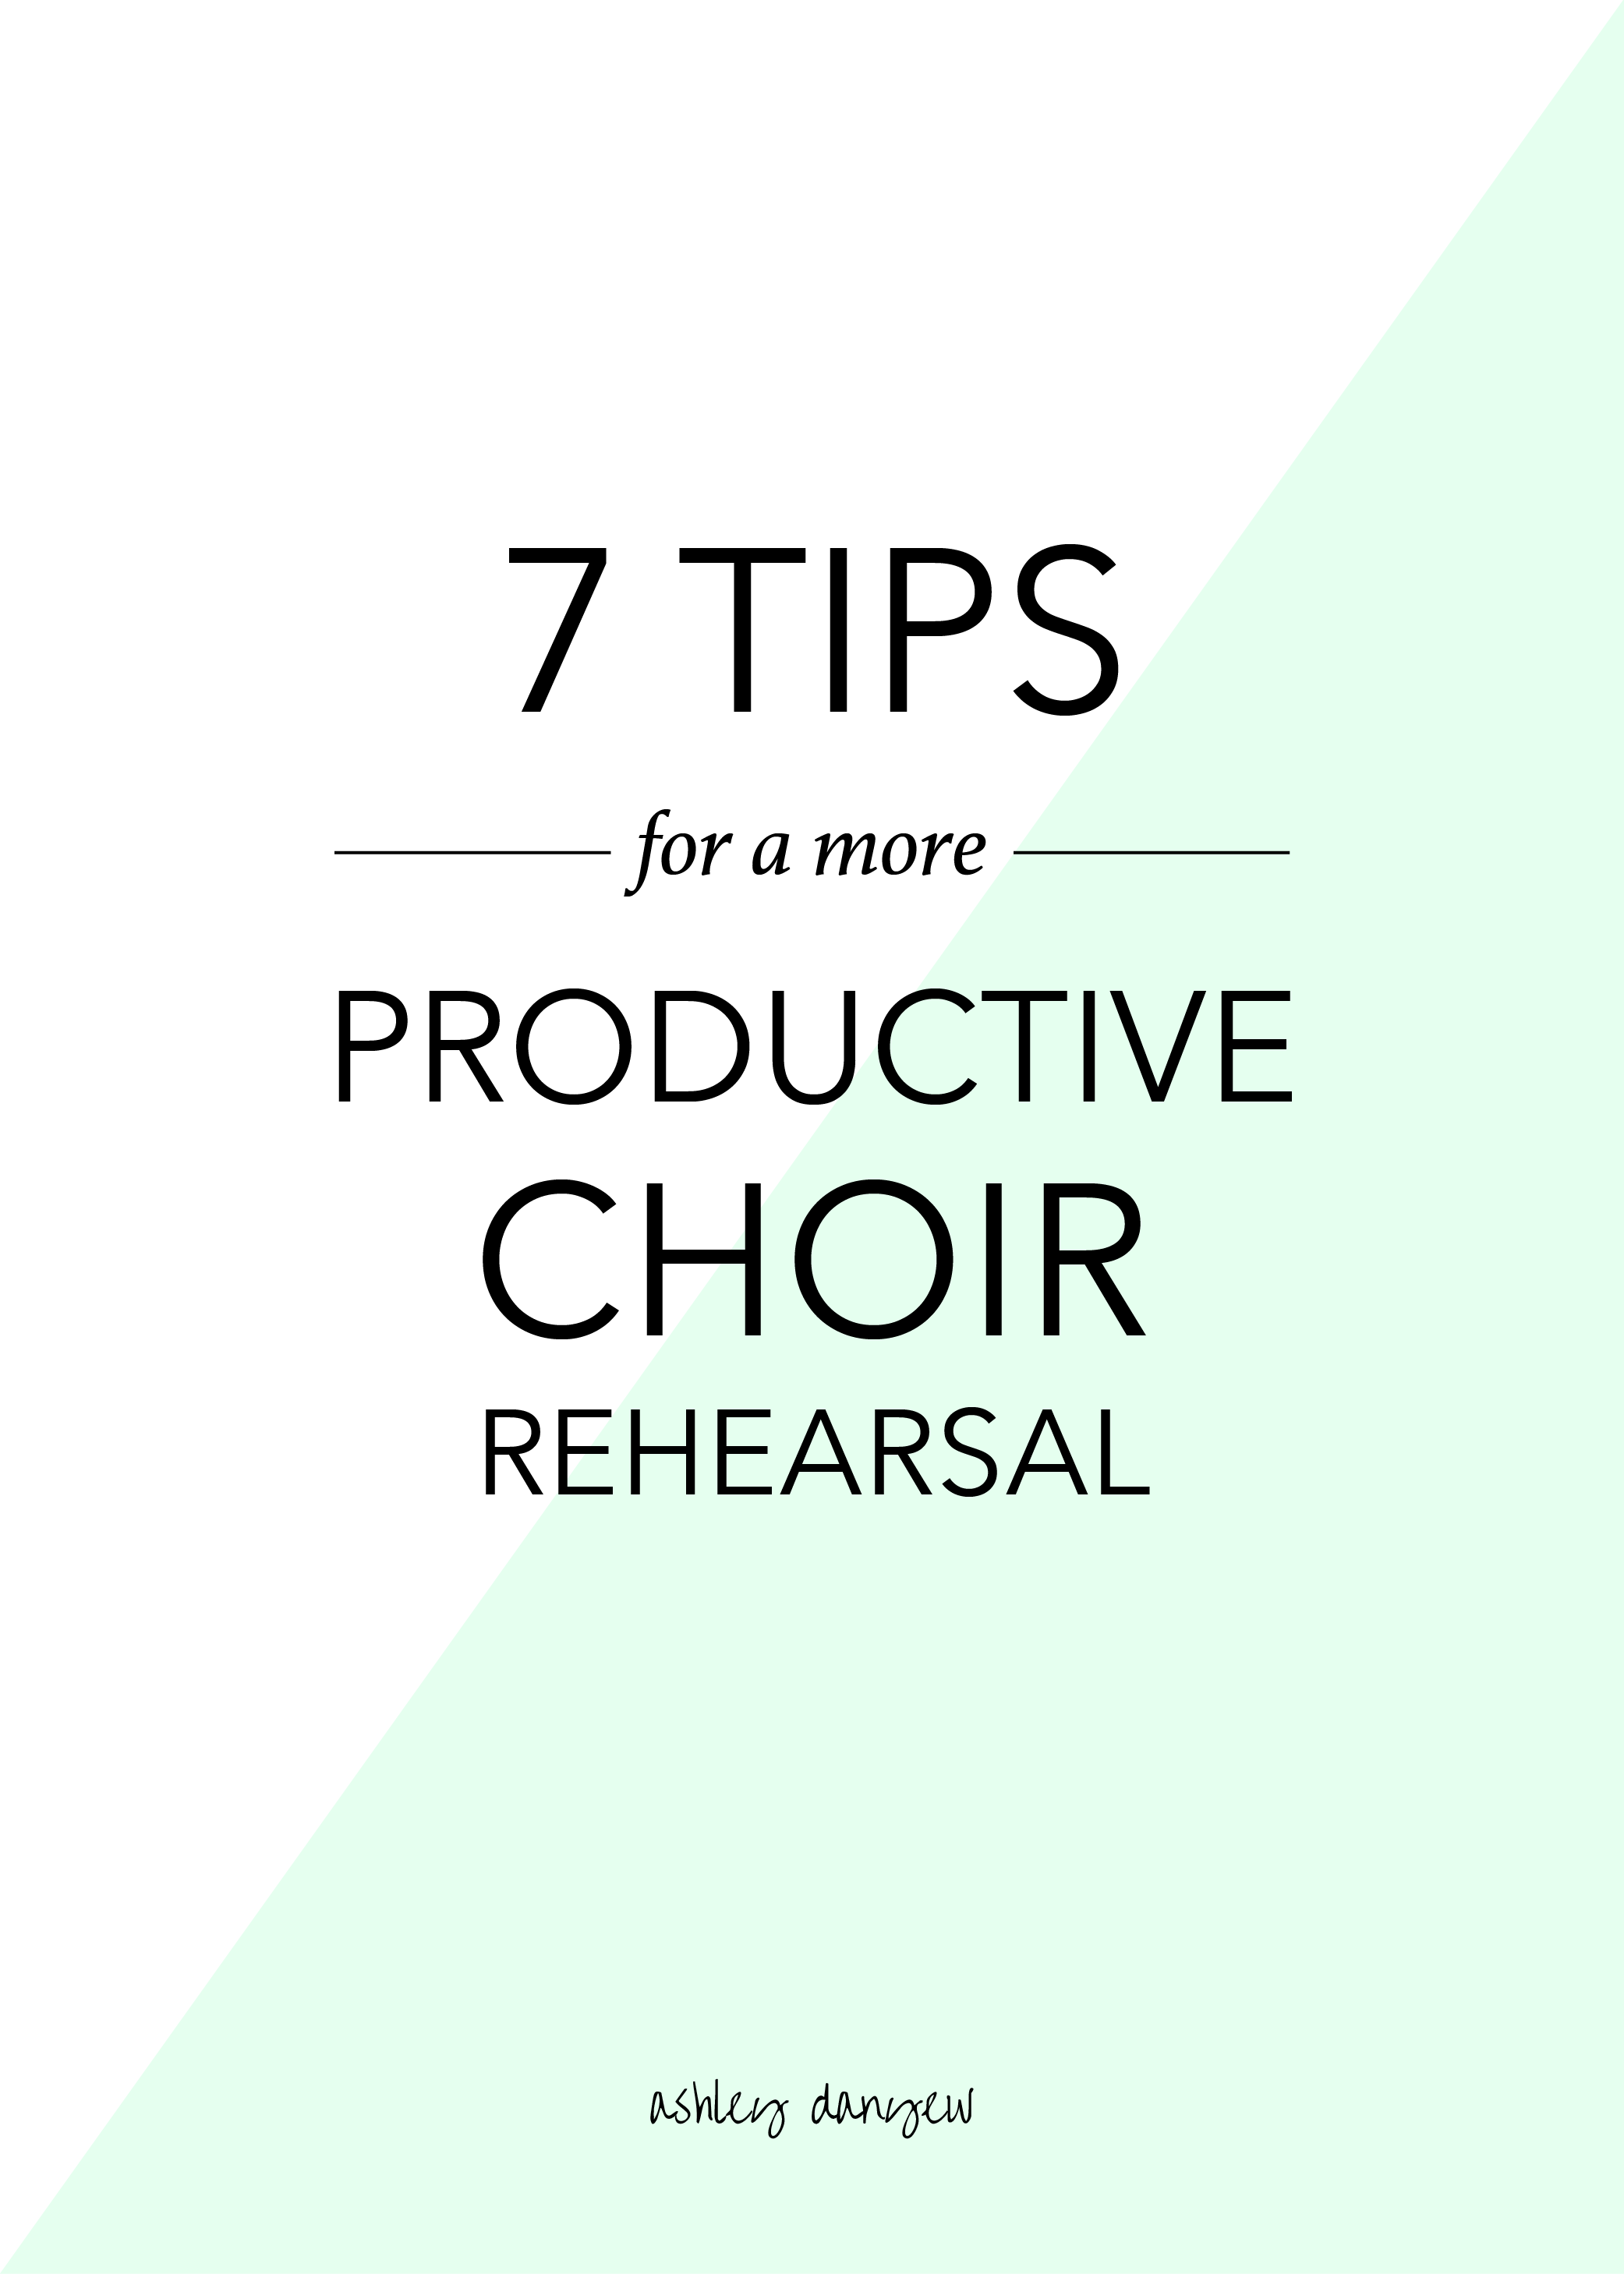 Copy of 7 Tips for a Productive Choir Rehearsal